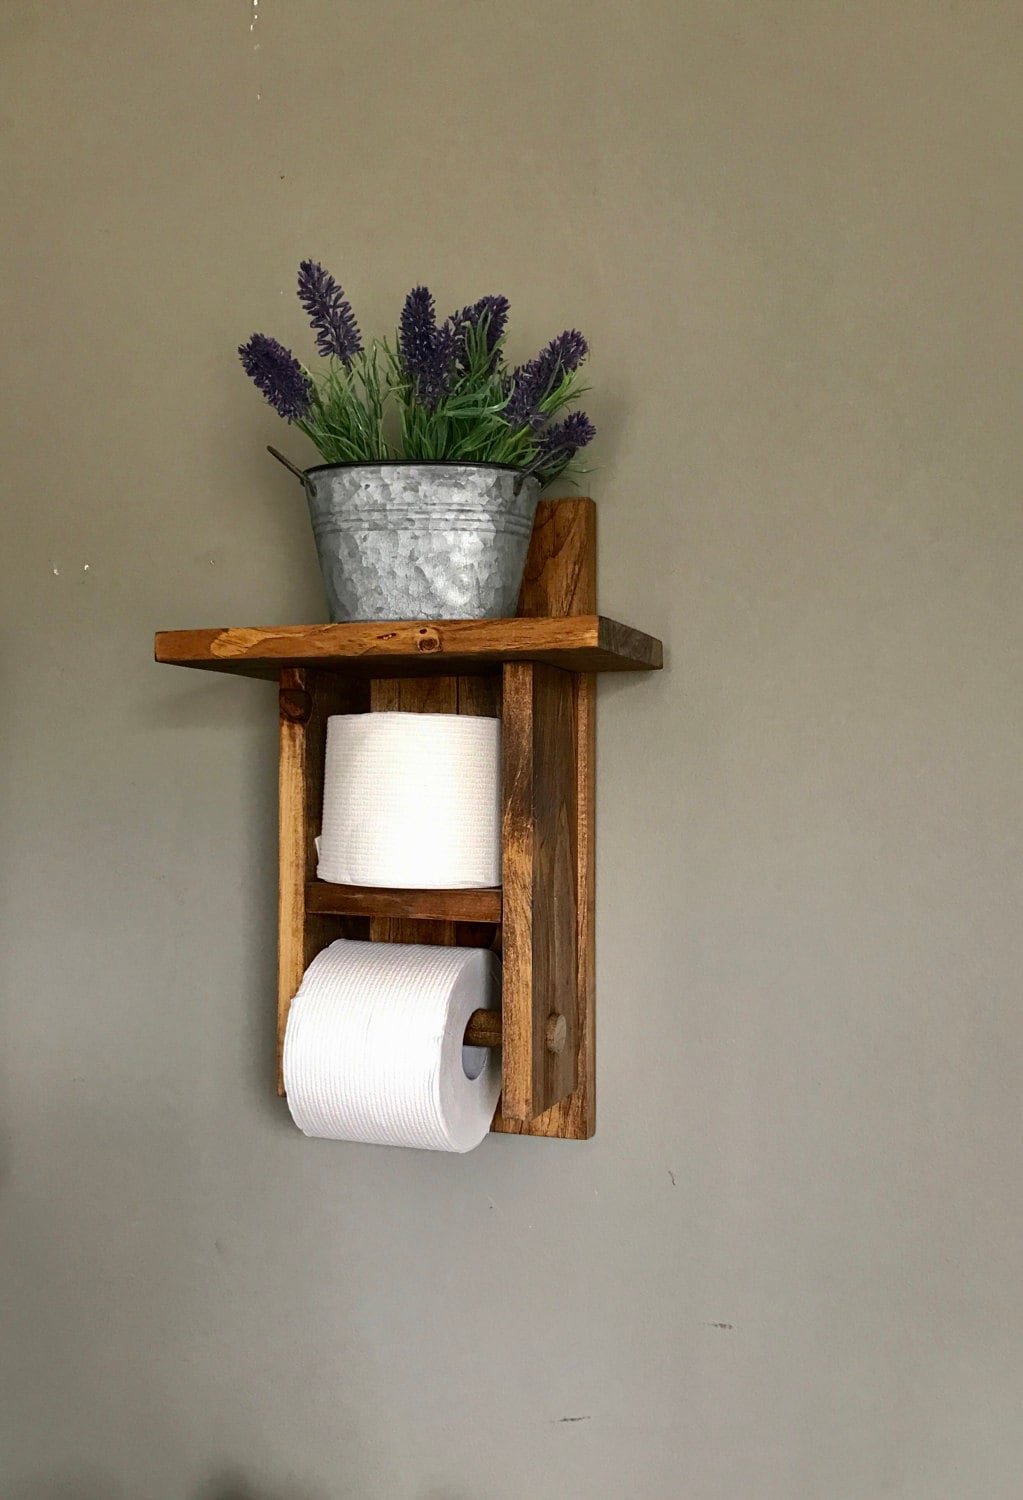 Covered Toilet Paper Storage Toilet Paper Holder Bathroom Decor Toilet Paper Storage Bath Tp